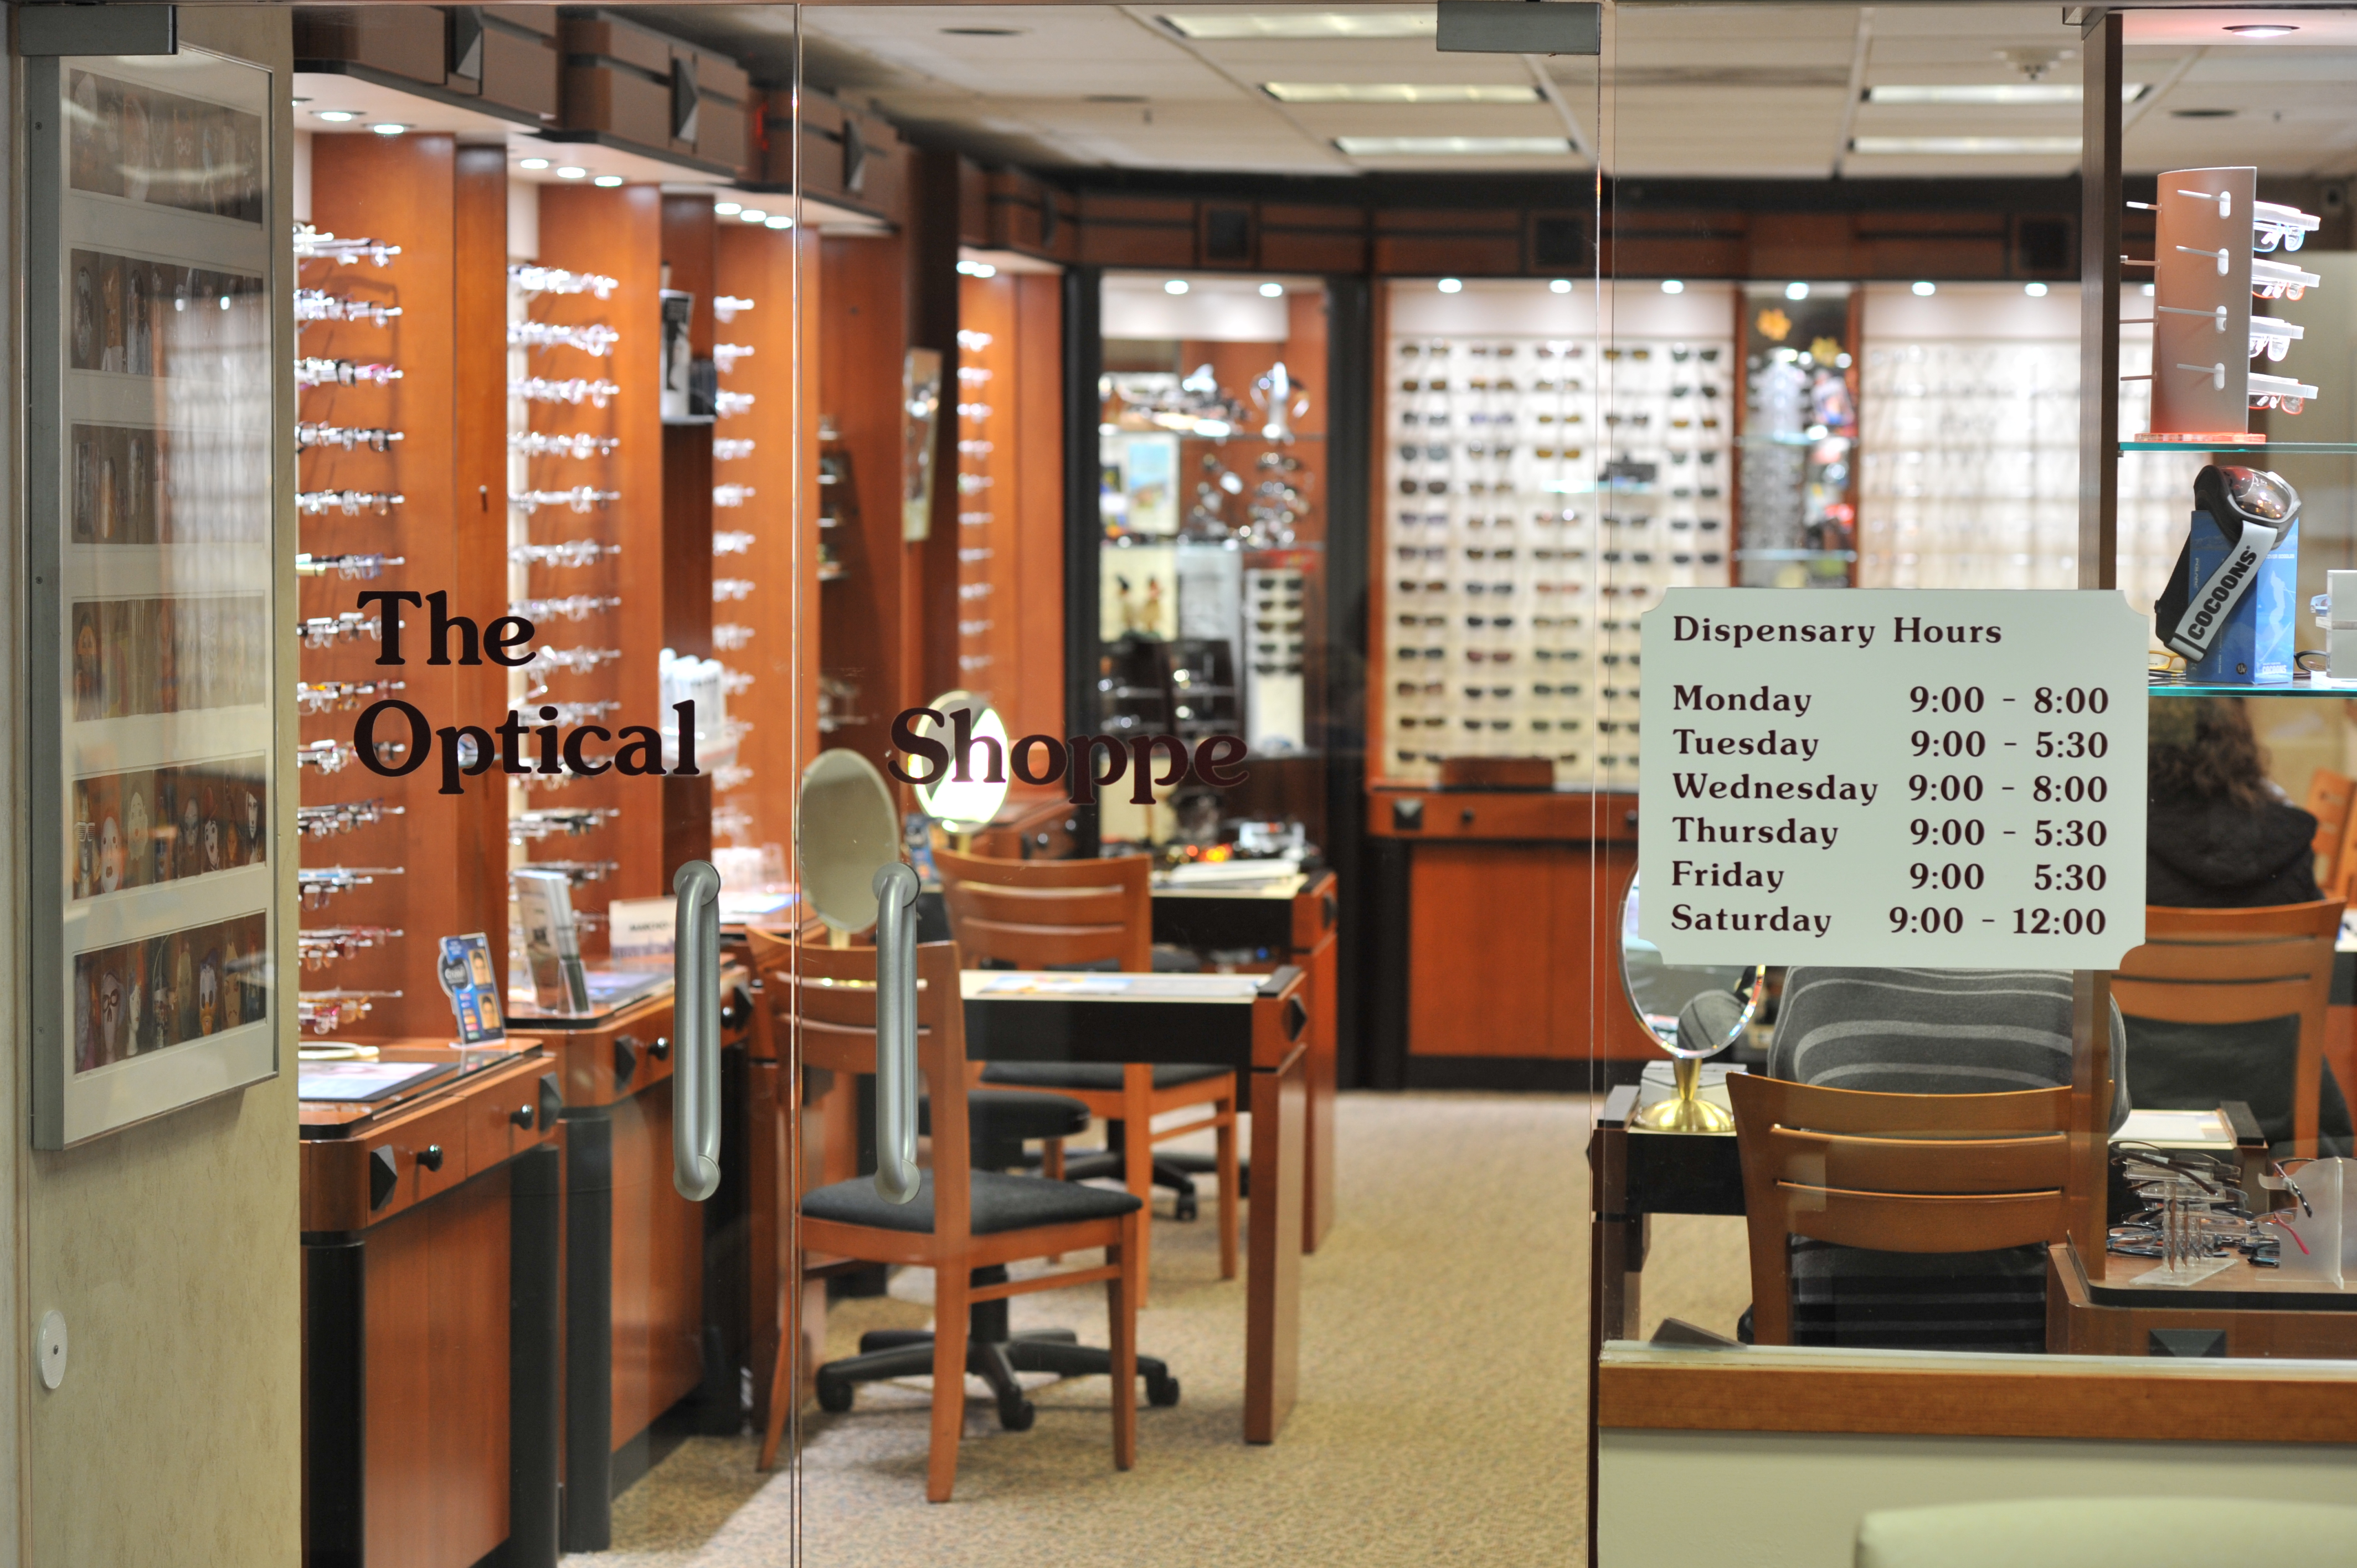 truezloadmw.ga, Livonia, Michigan. 75, likes · talking about this. Affordable eyewear for your prescription and non-prescription needs.